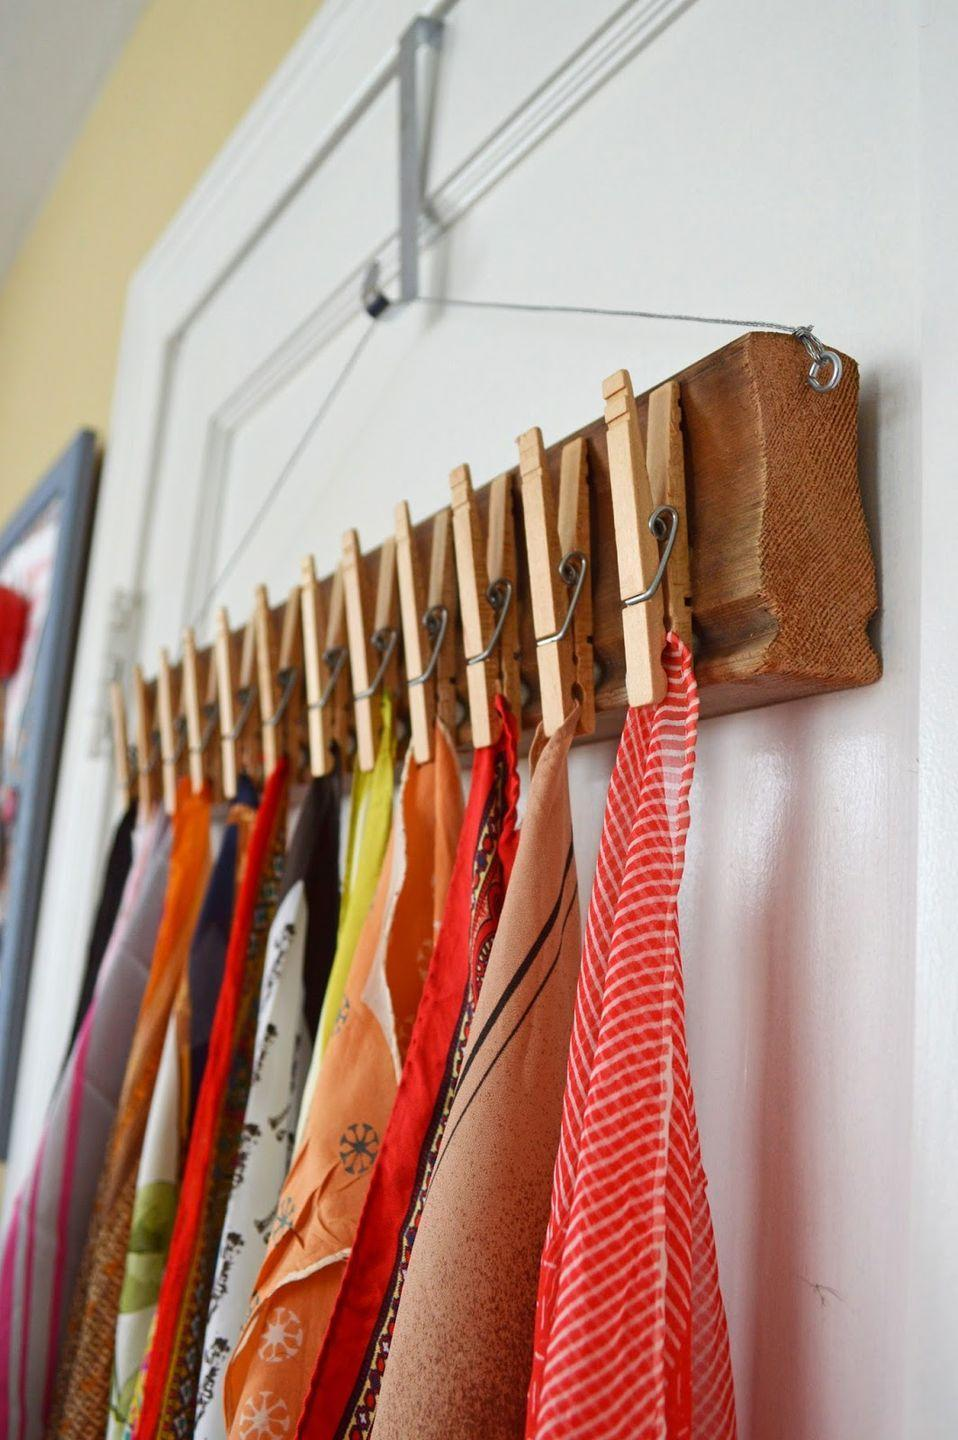 """<p>Who says clothespins are only for hanging things up to dry? They can keep your fabric accessories off the floor, too. </p><p><a href=""""http://www.sallyannk.com/2014/05/diy-clothes-pin-scarf-holder.html"""" rel=""""nofollow noopener"""" target=""""_blank"""" data-ylk=""""slk:See more at Sally Ann K »"""" class=""""link rapid-noclick-resp""""><em>See more at Sally Ann K »</em></a></p>"""